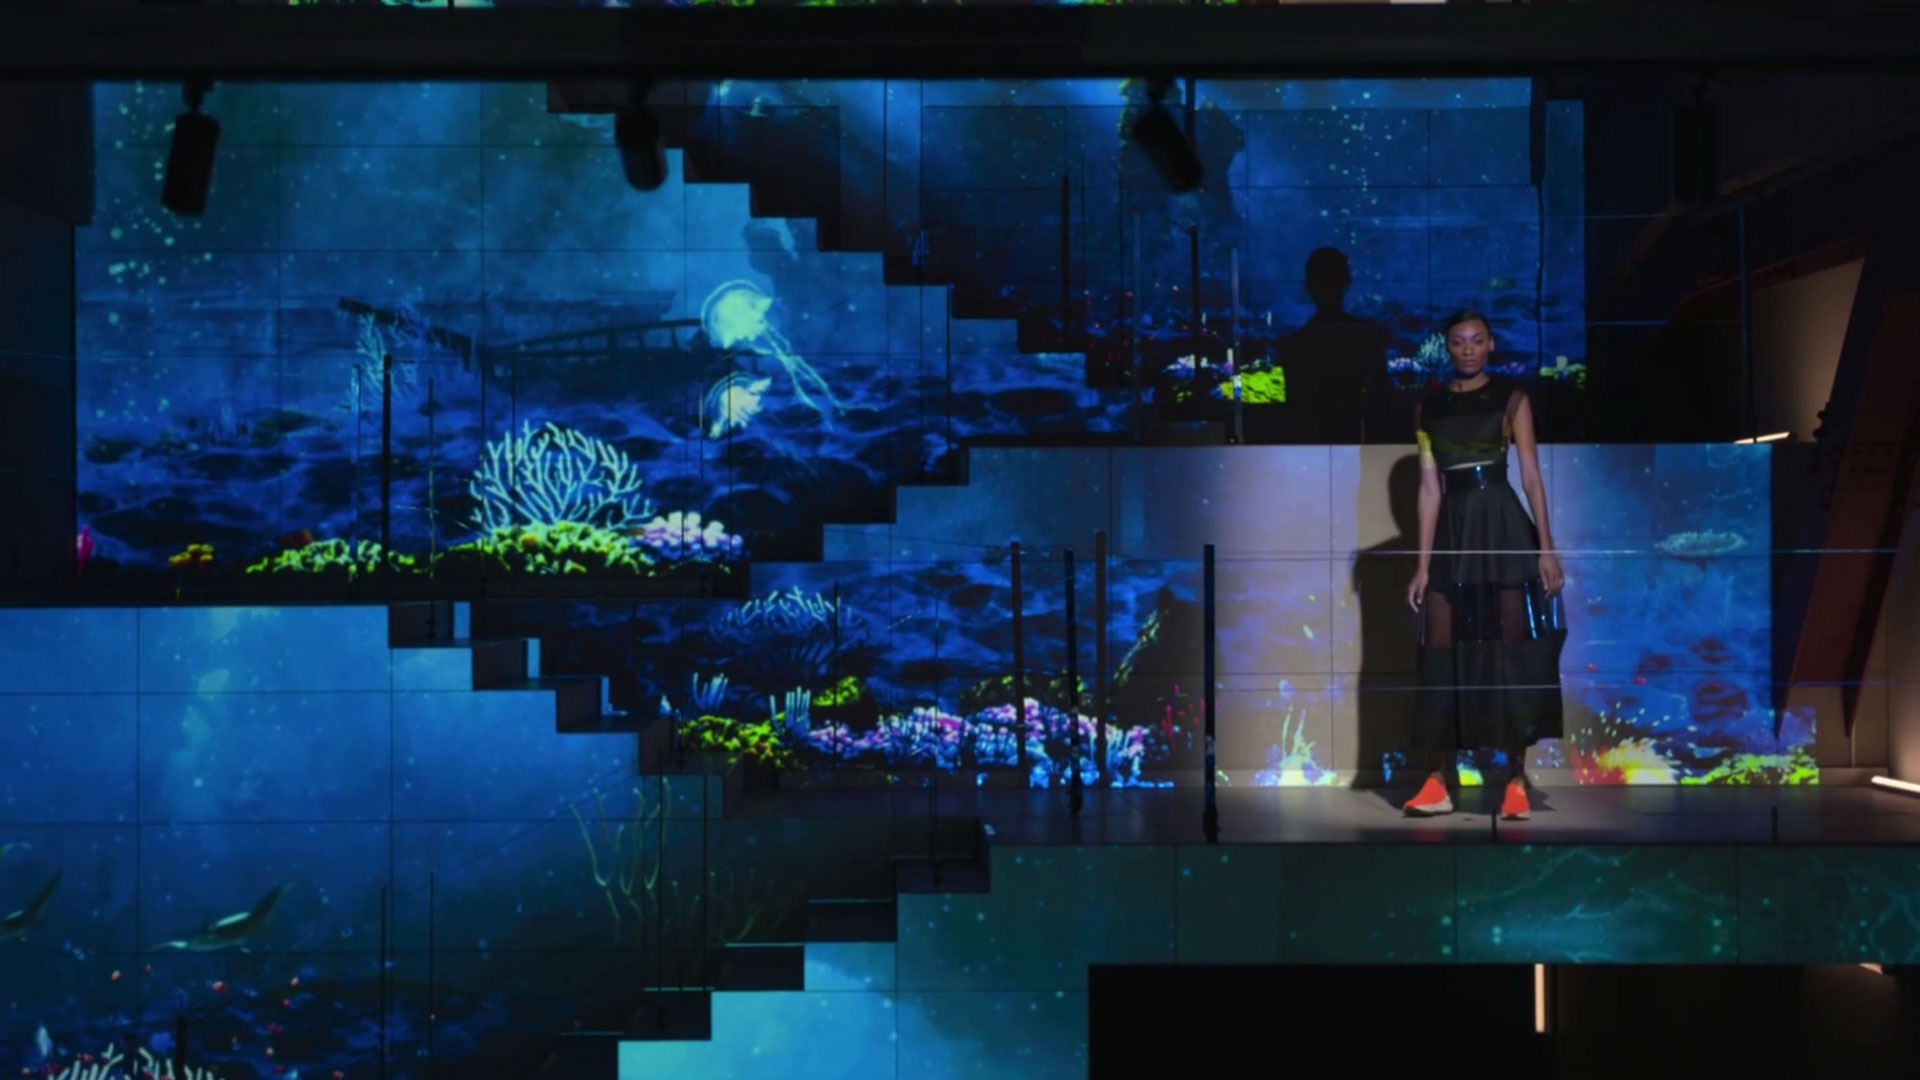 amazon prime 3d projection mapping eventagrate fashion technology touch designer dubai japan water underwater